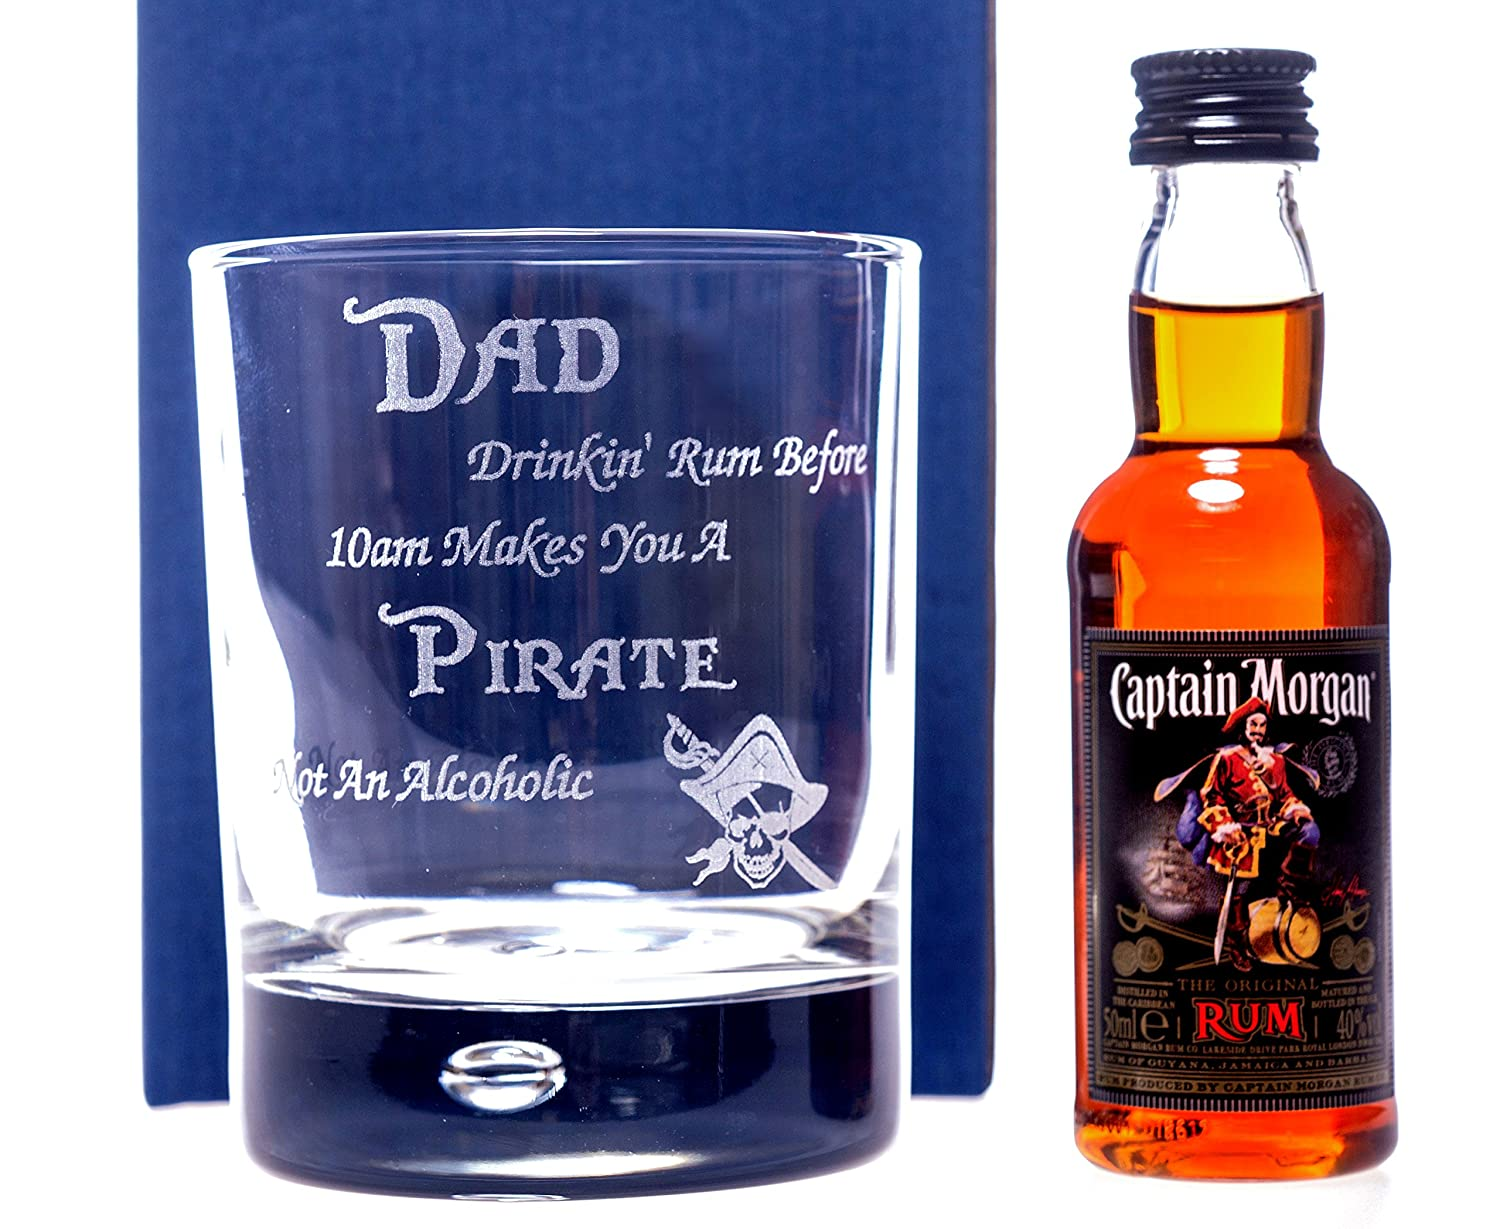 DAD PIRATE RUM DESIGN Bubble Based Glass + Captain Morgan Rum ...